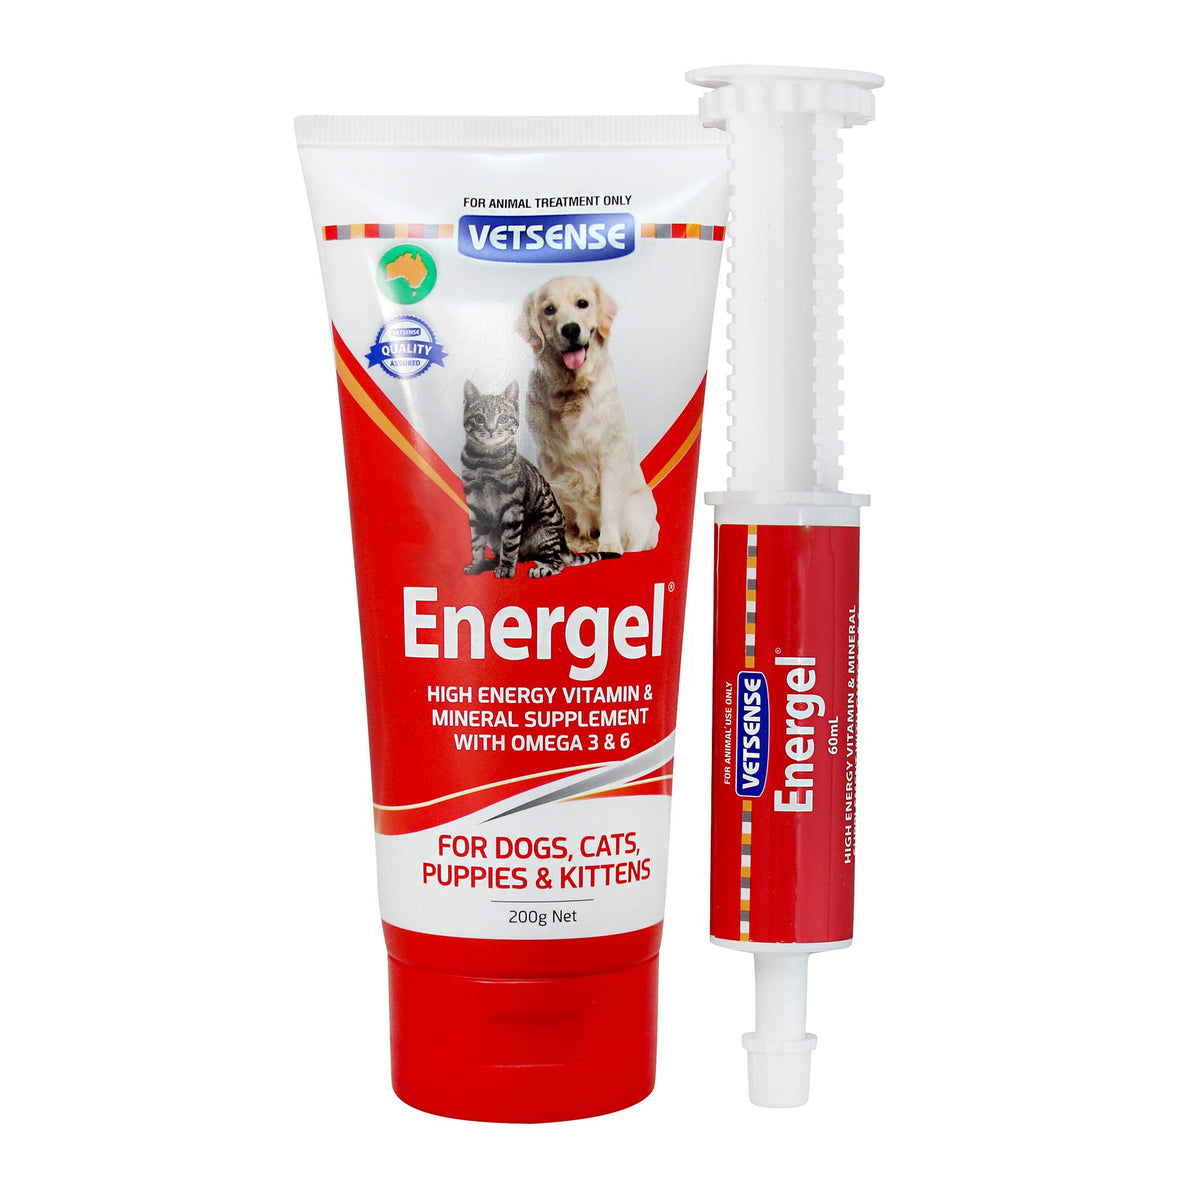 Vetsense Energel High Energy Vitamin & Mineral Supplement